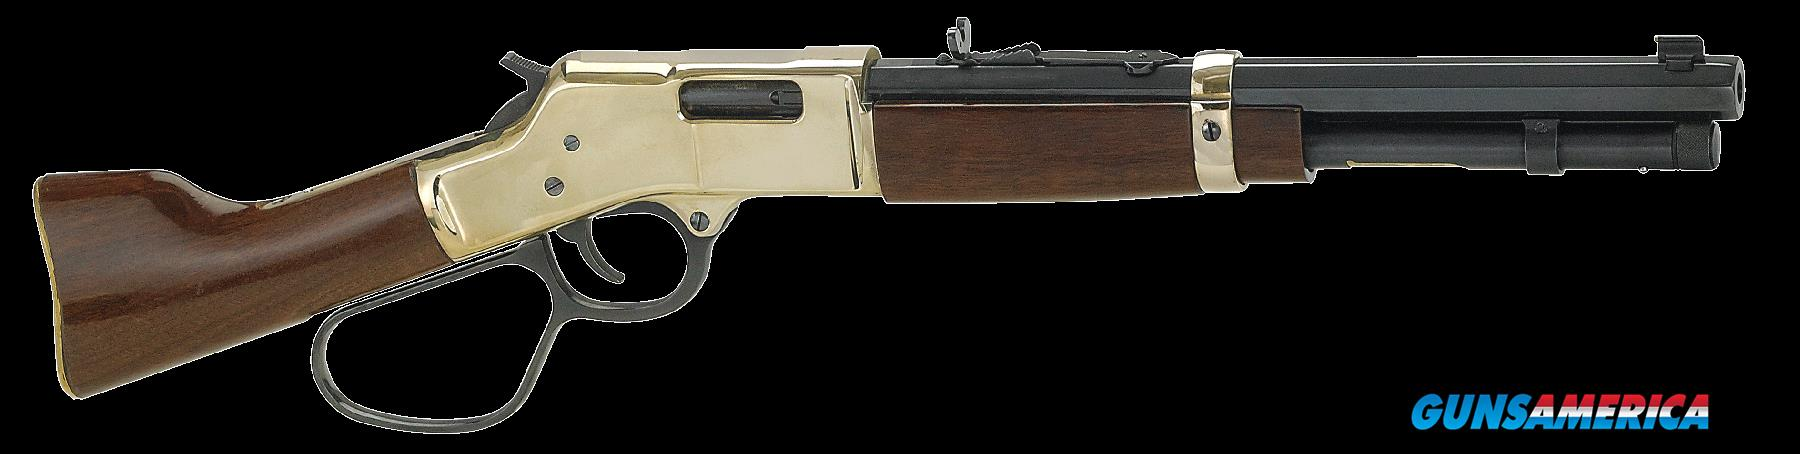 "Henry H006MML Mare''s Leg Pistol Lever 357 Magnum 12.904"" 5+1 Walnut Brass Receiver/Blued Barre  Guns > Rifles > Henry Rifle Company"